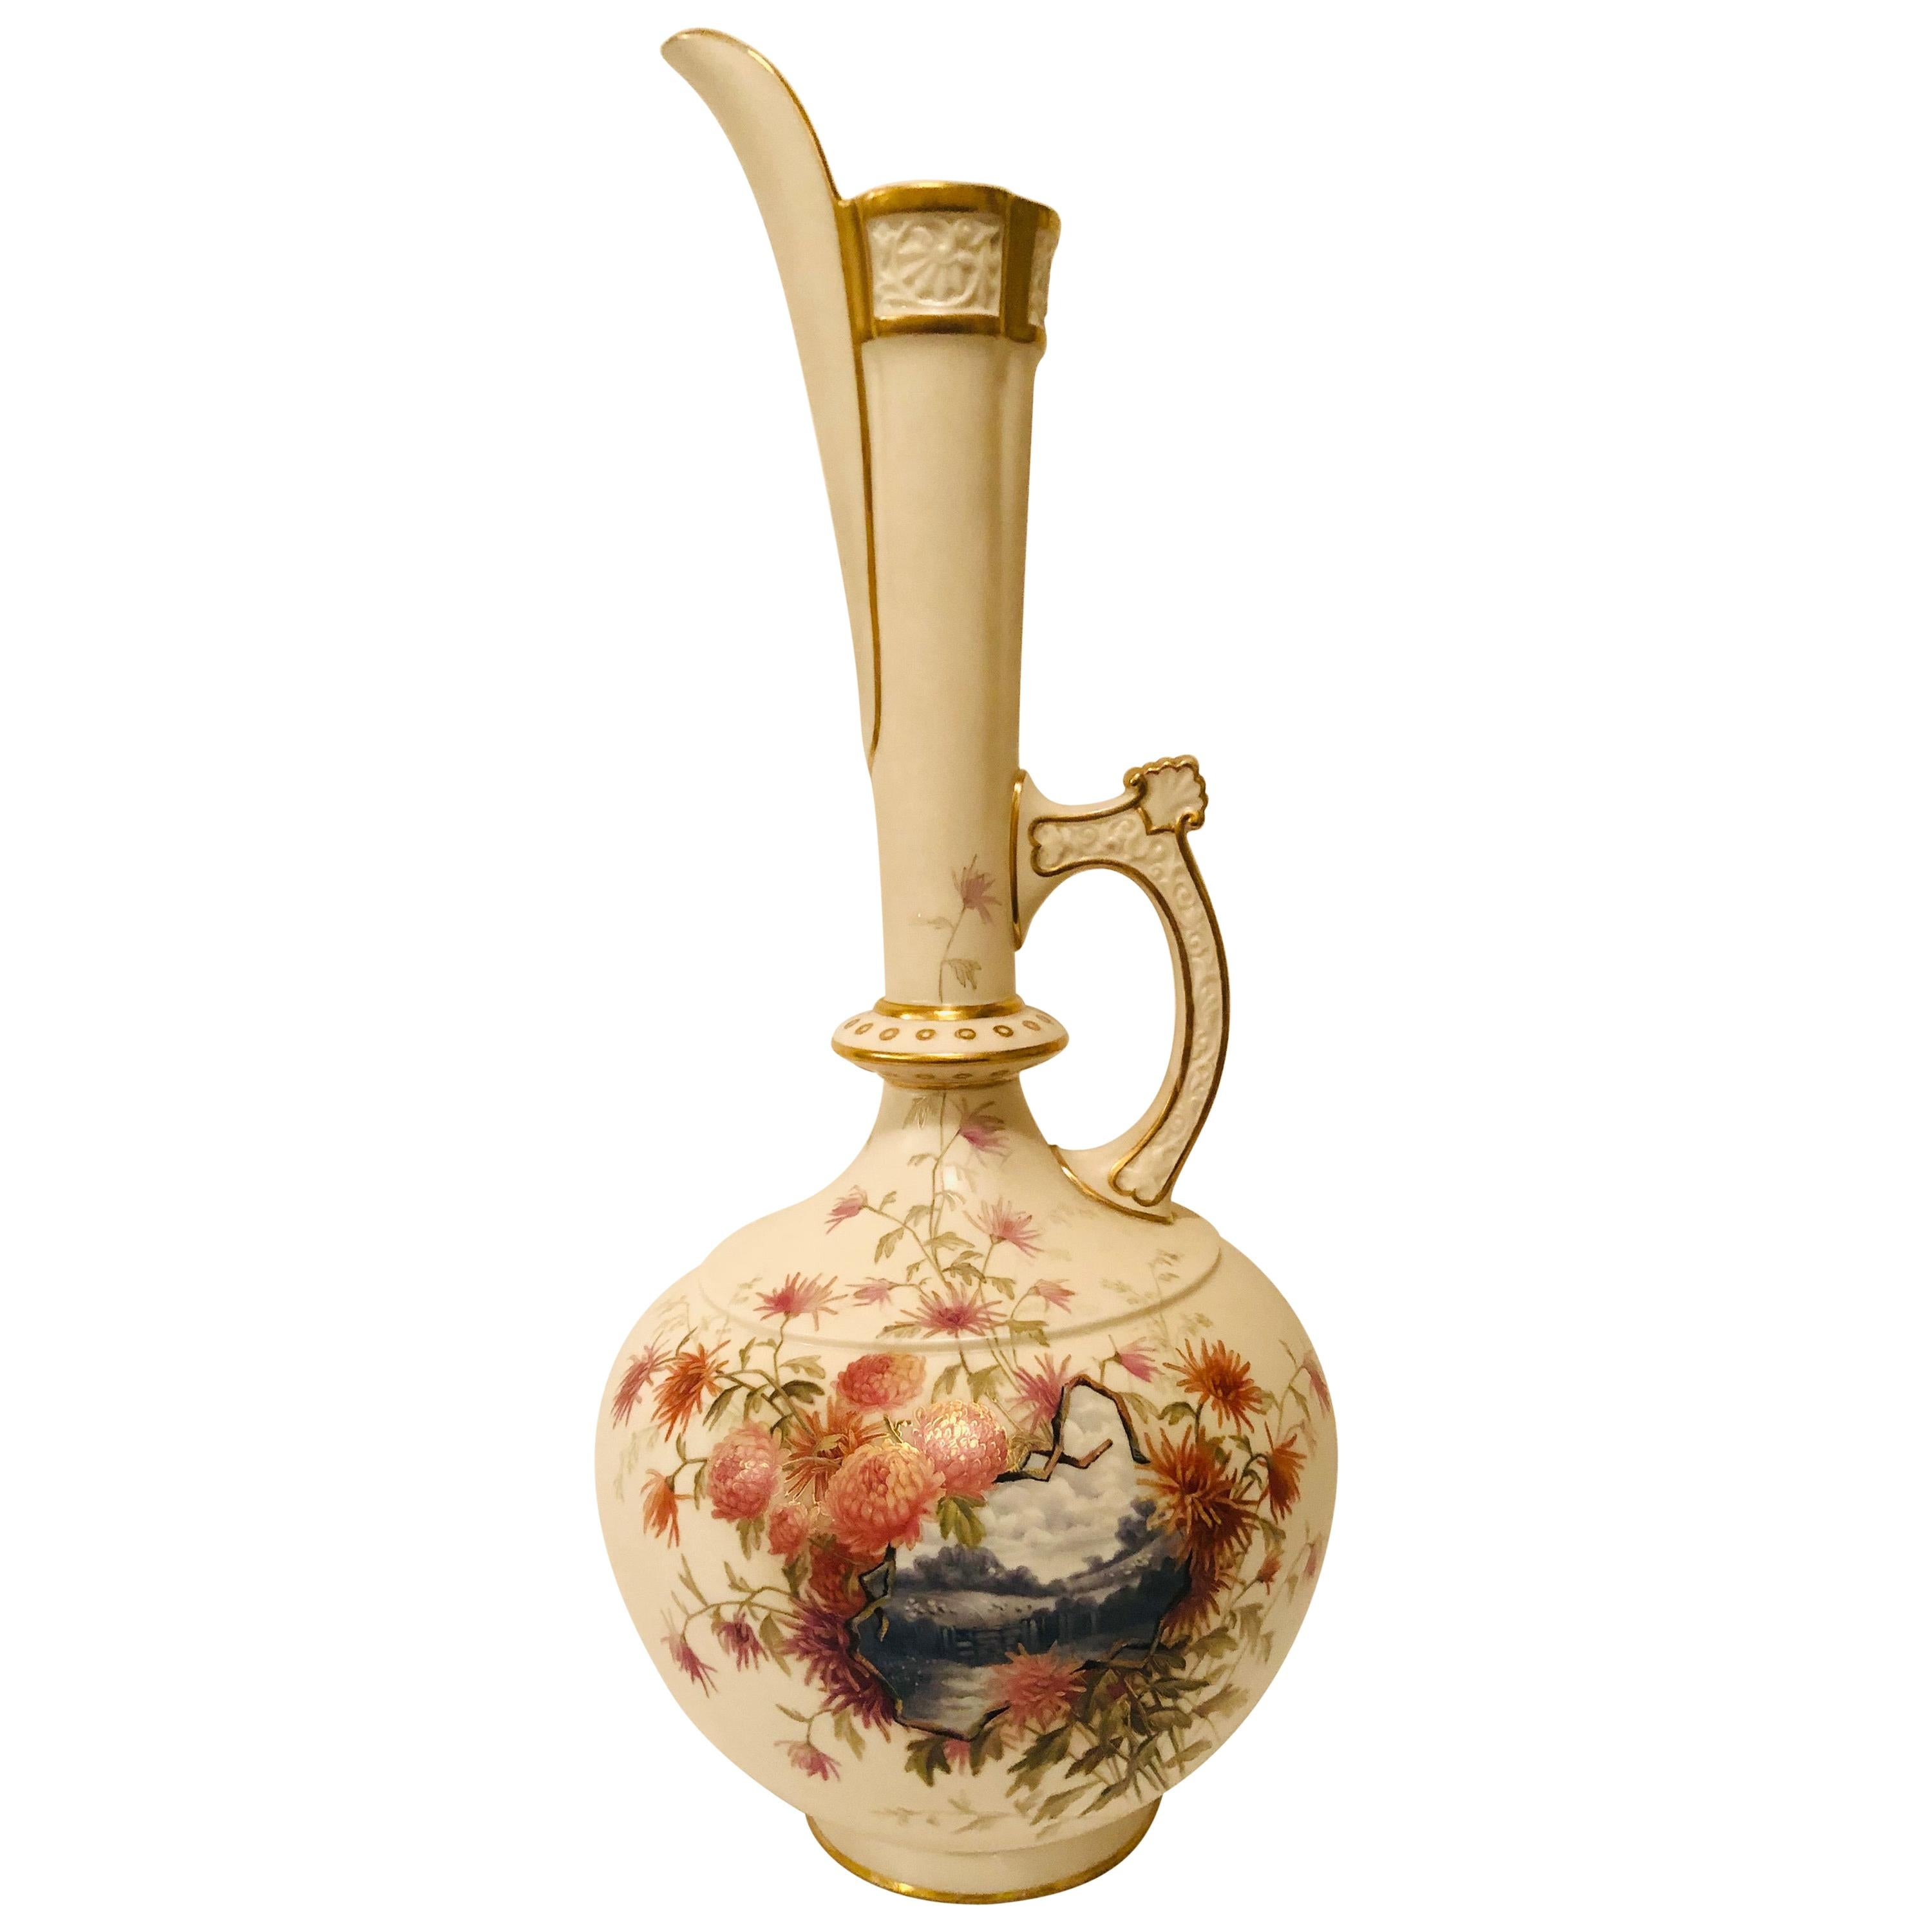 Tall Royal Worcester Ewer Painted with a Pastoral Scene Surrounded by Flowers